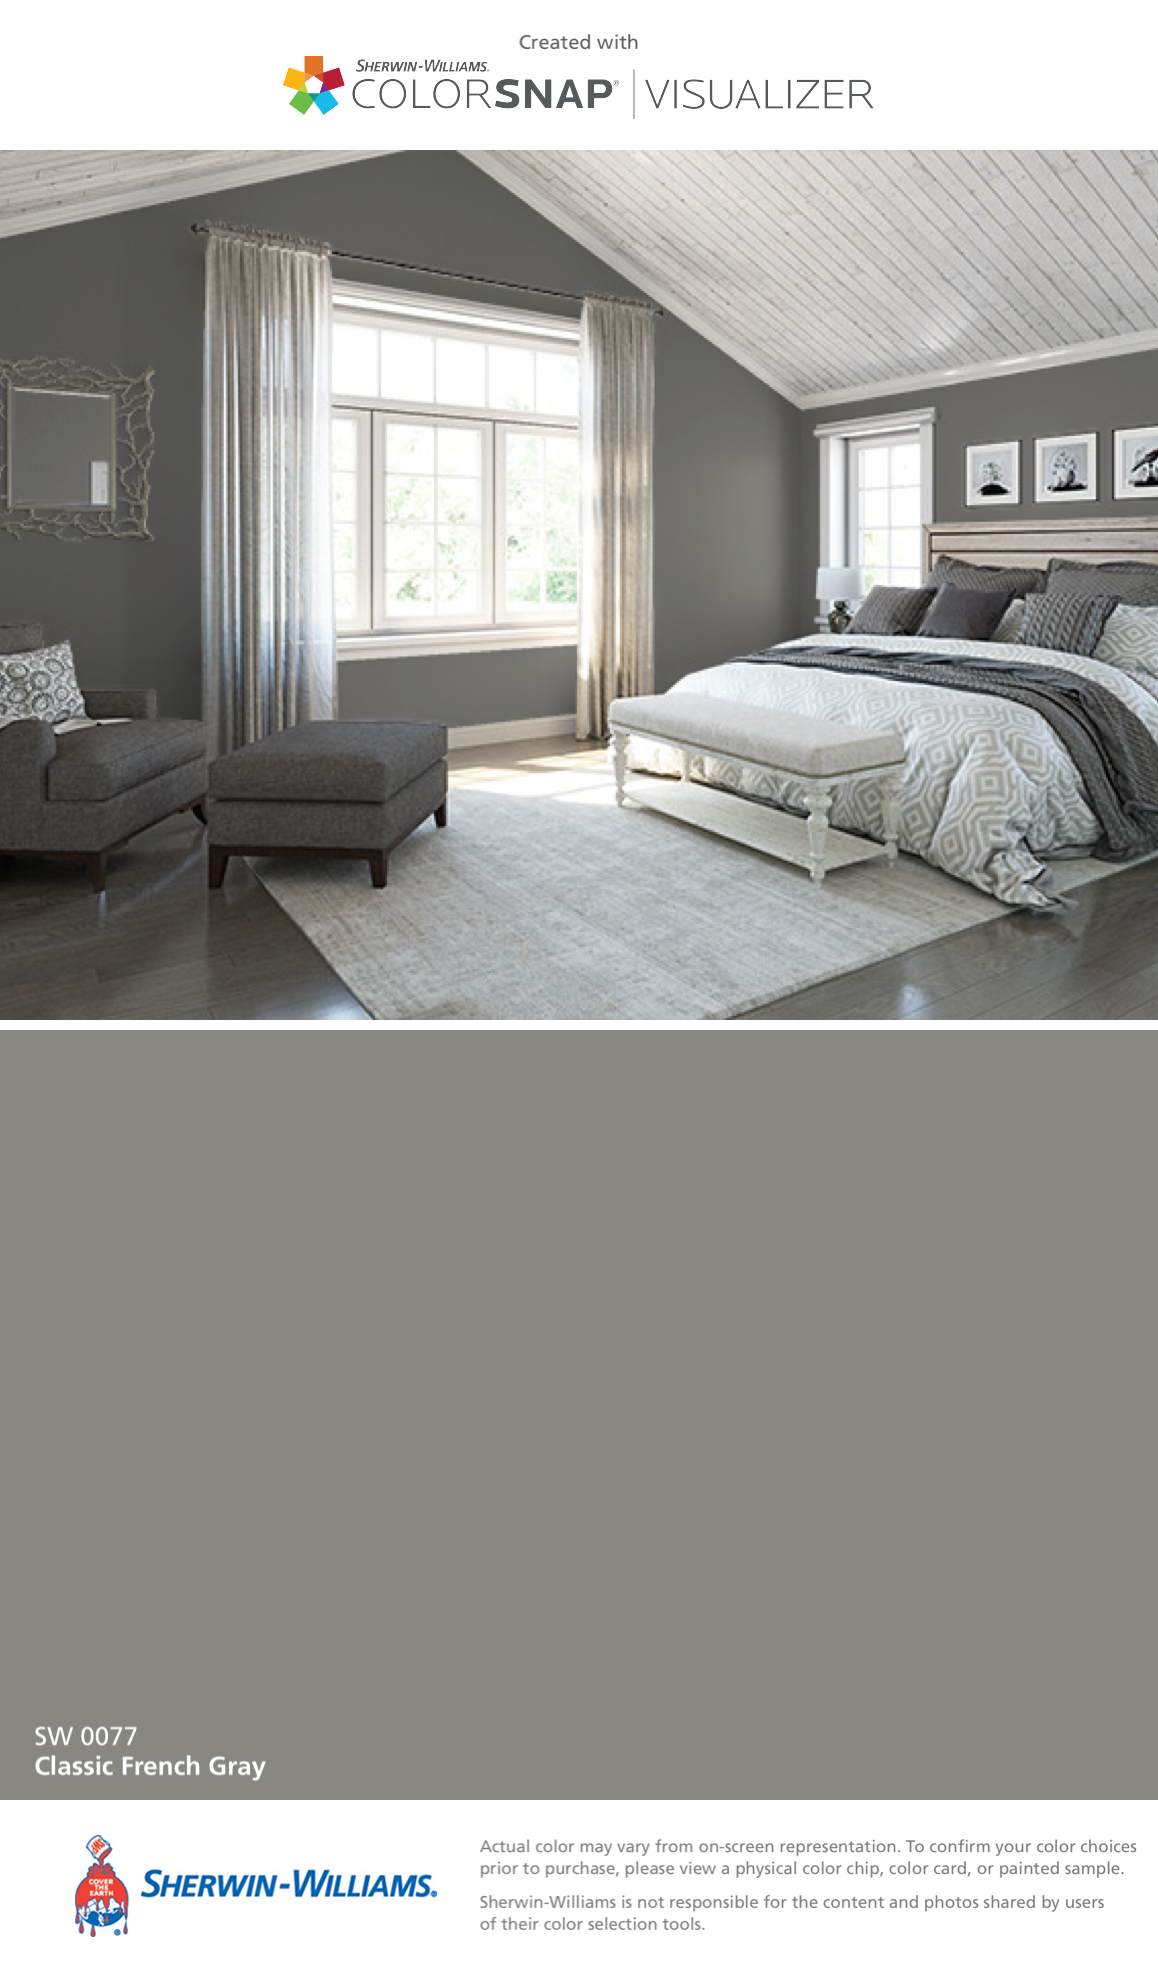 Ryleigh Classic French Gray Sw 0077 Home Decor In 2019 Room